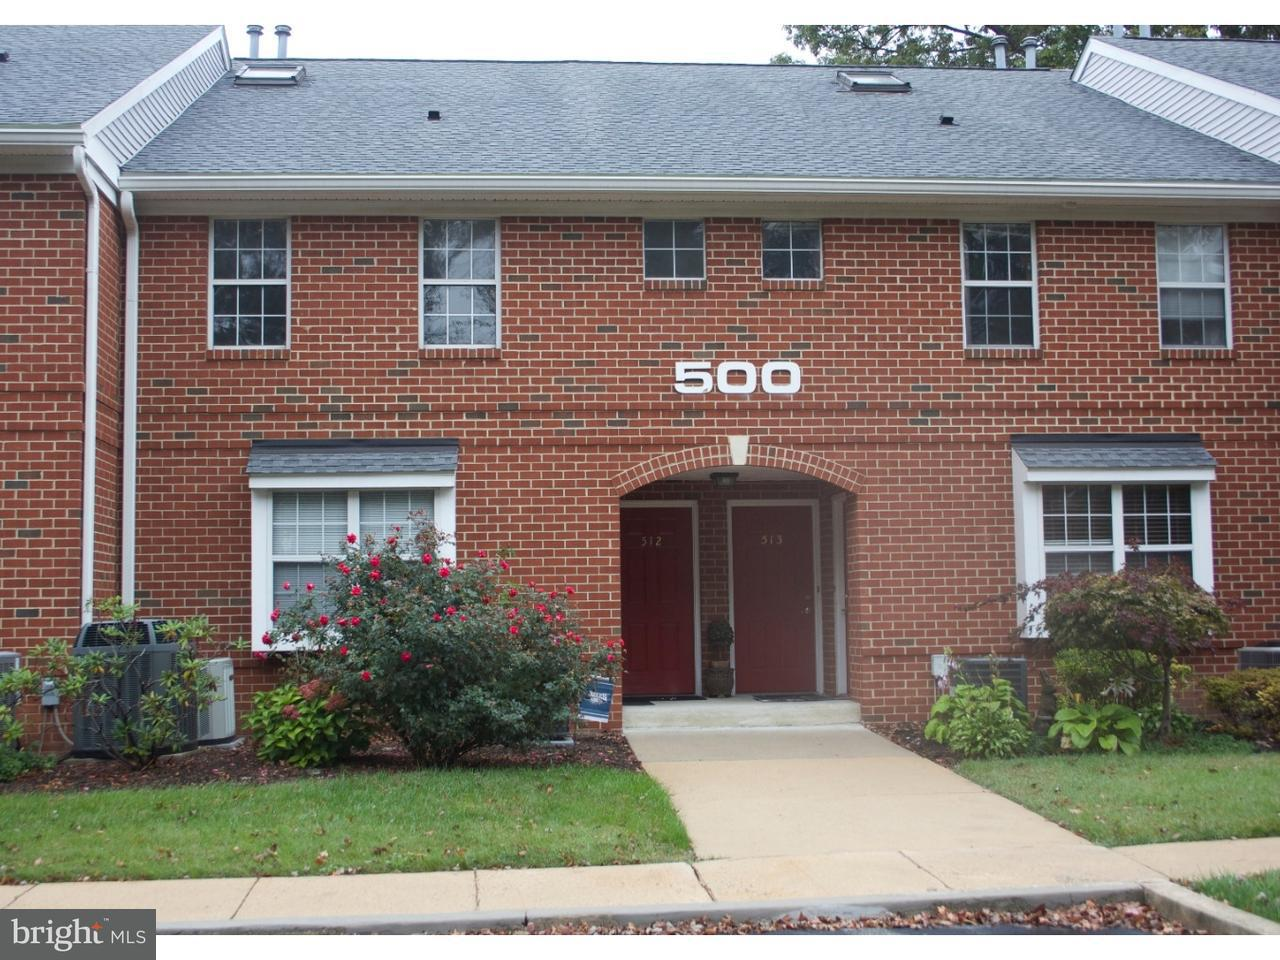 750 E Marshall West Chester , PA 19380